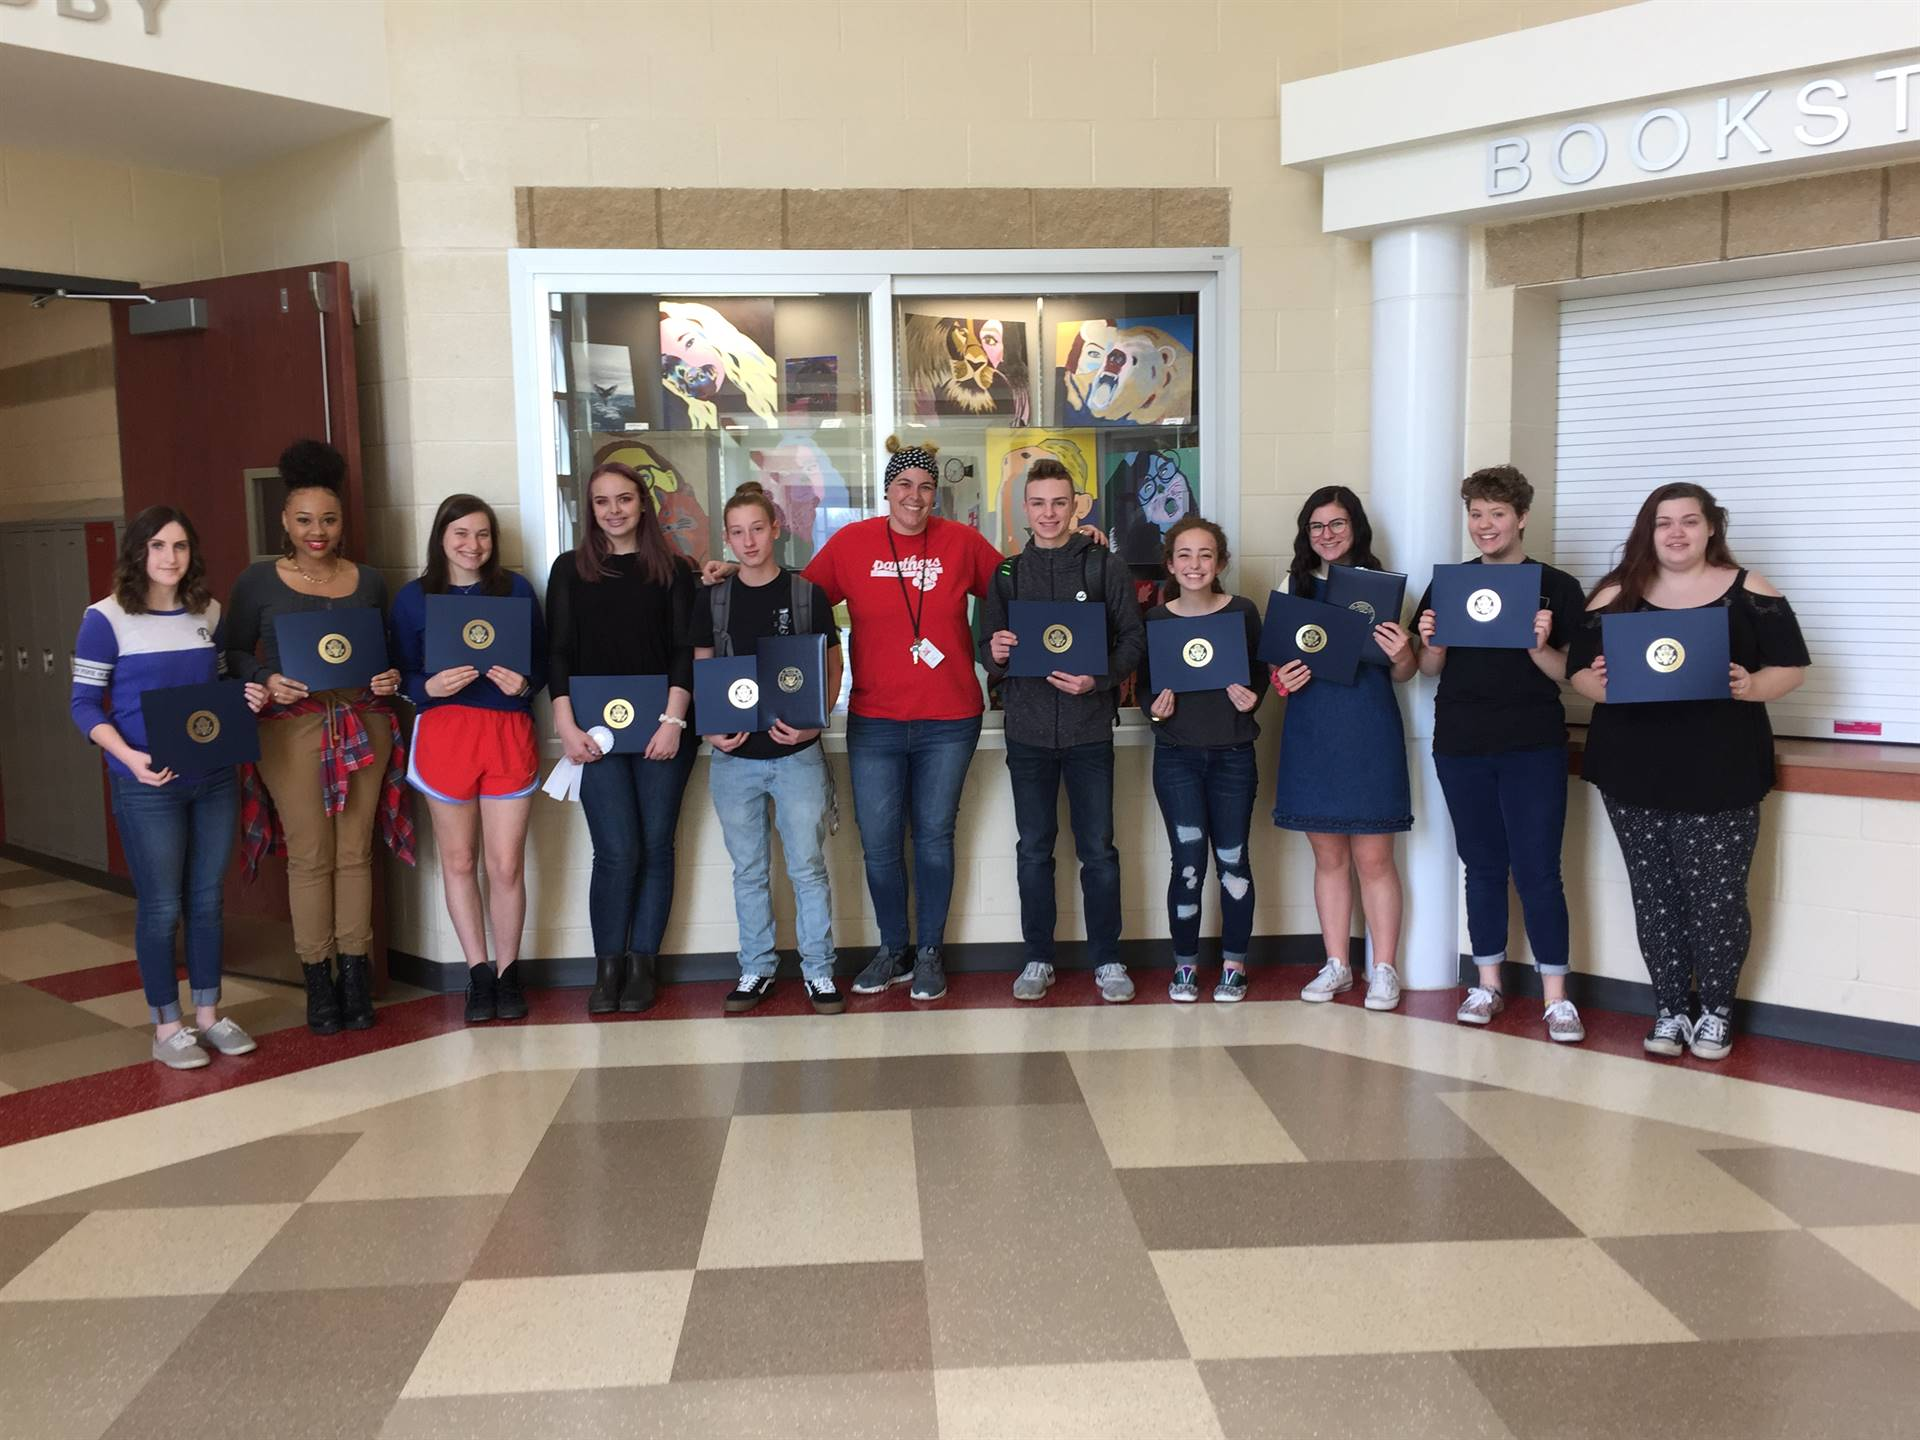 NHS Congressional Art Show Participants Receive Their Awards